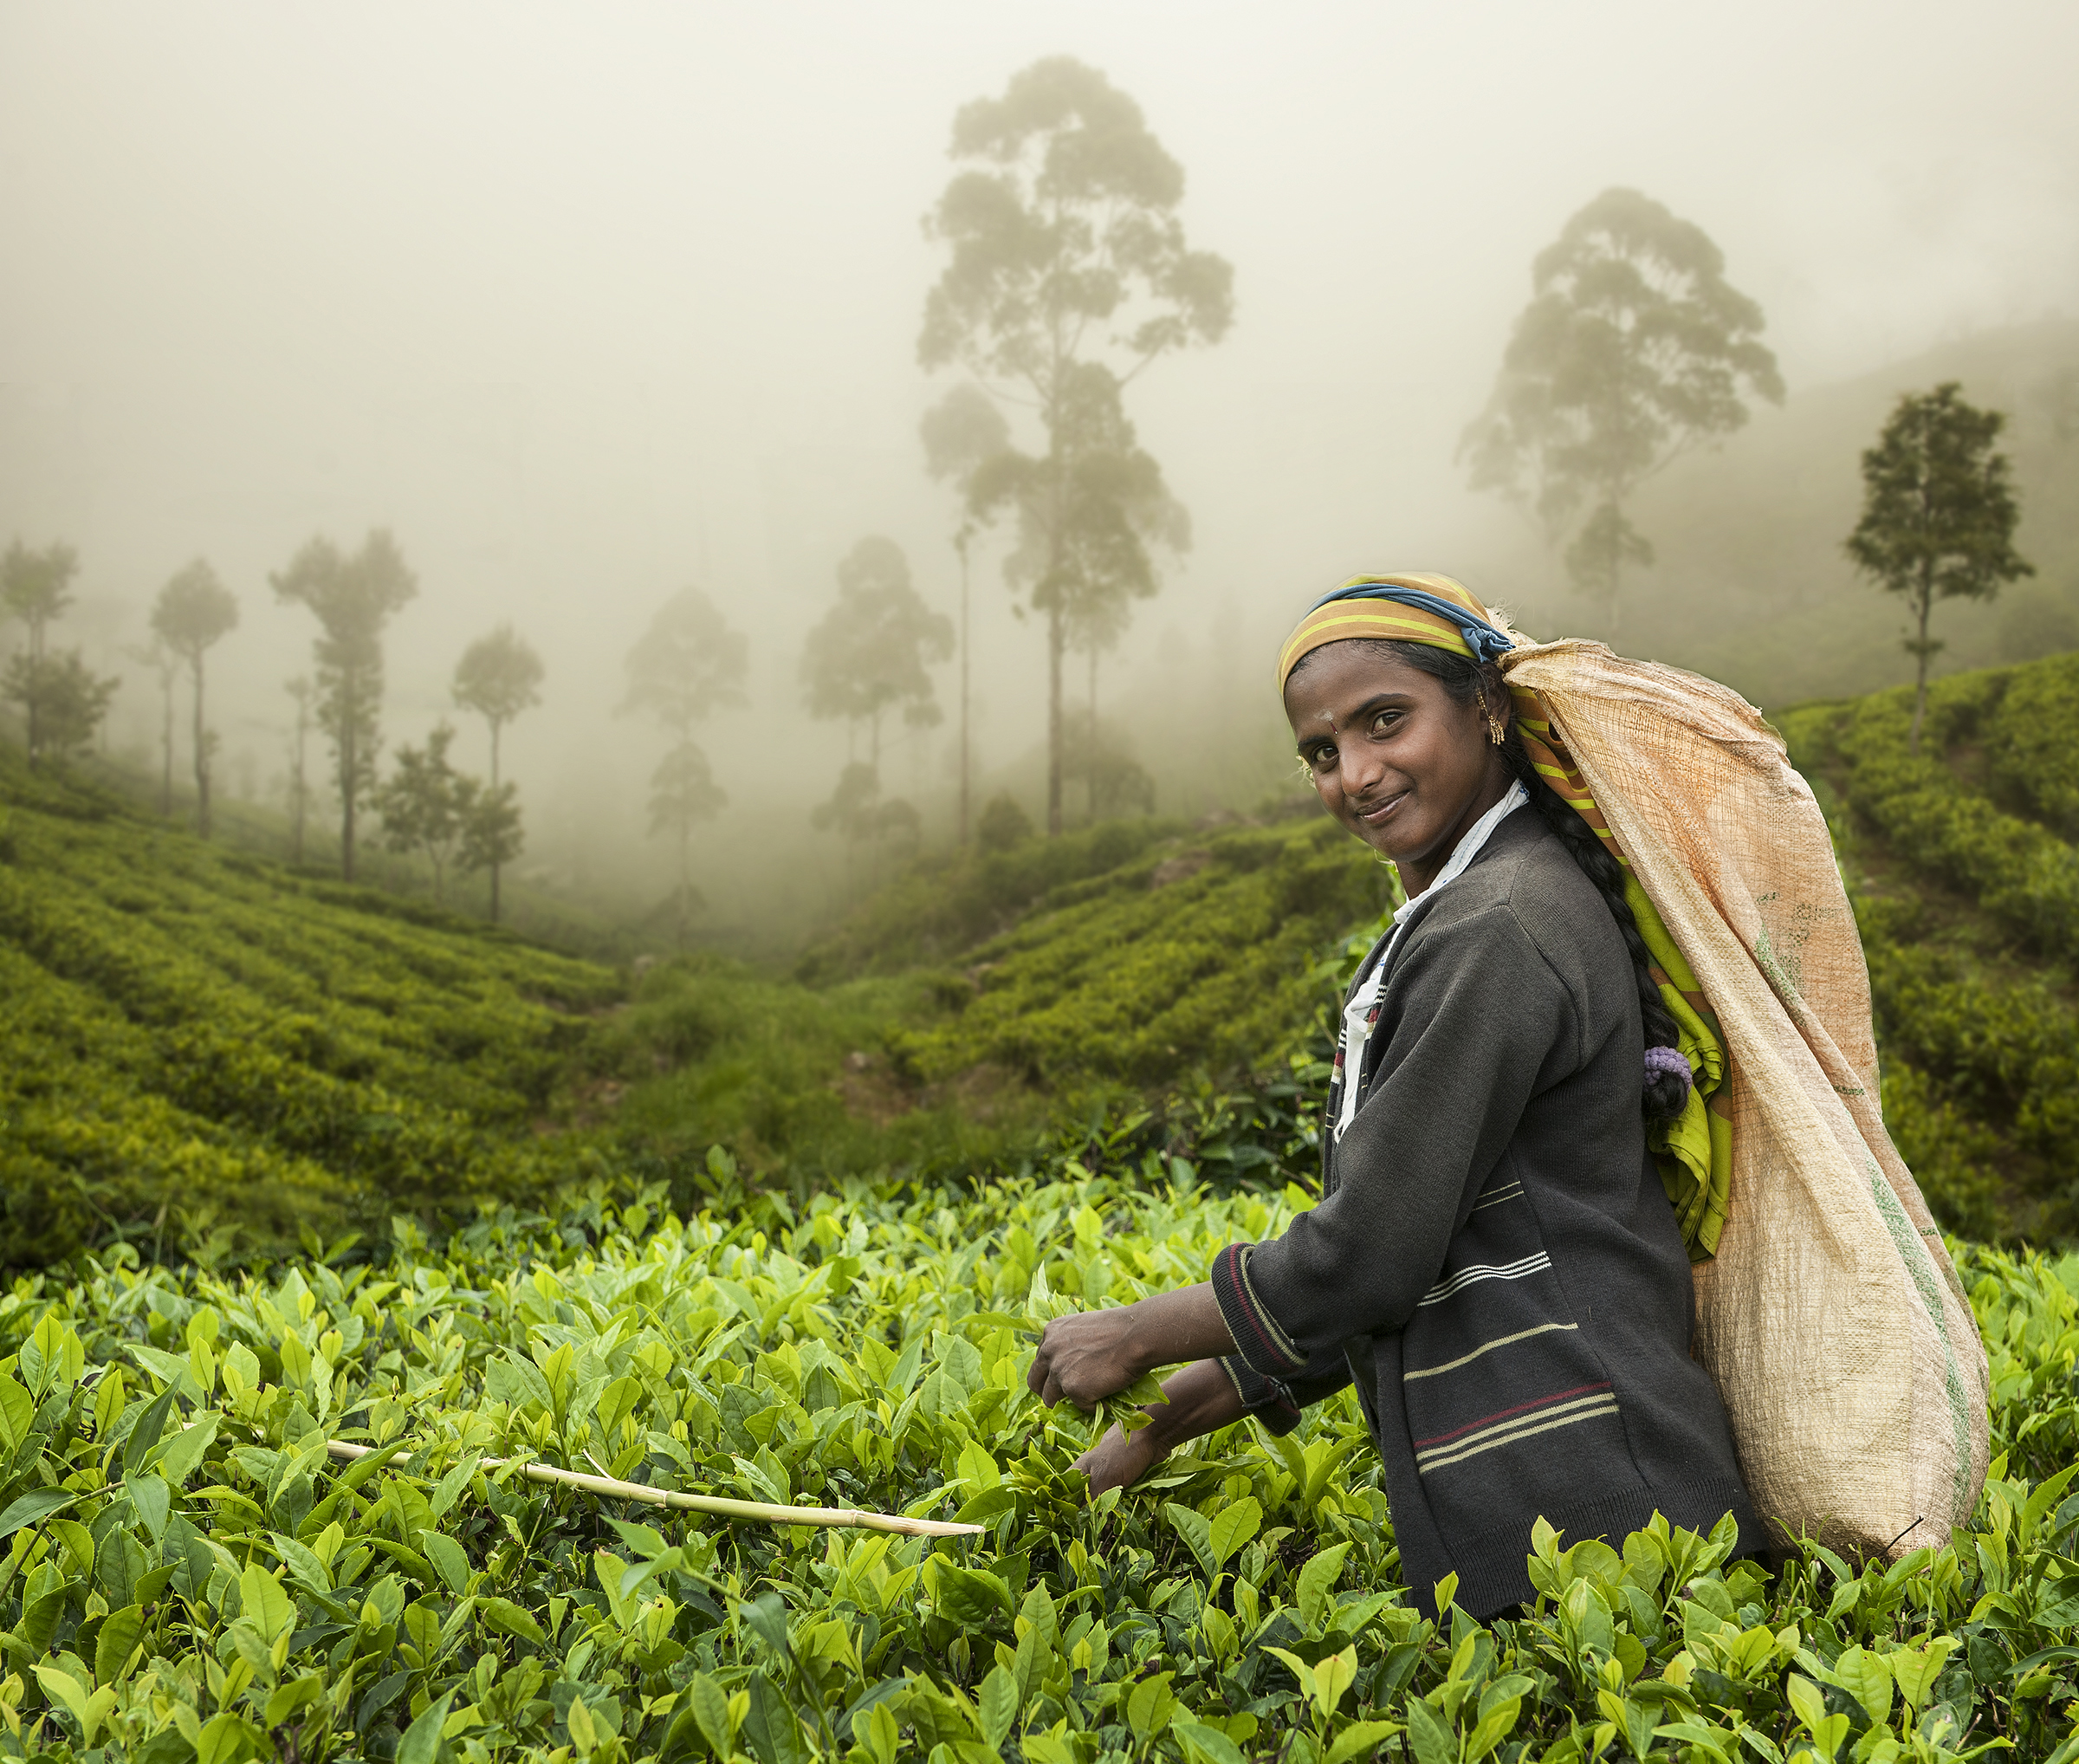 Mark Sedgwick – The Tea Picker